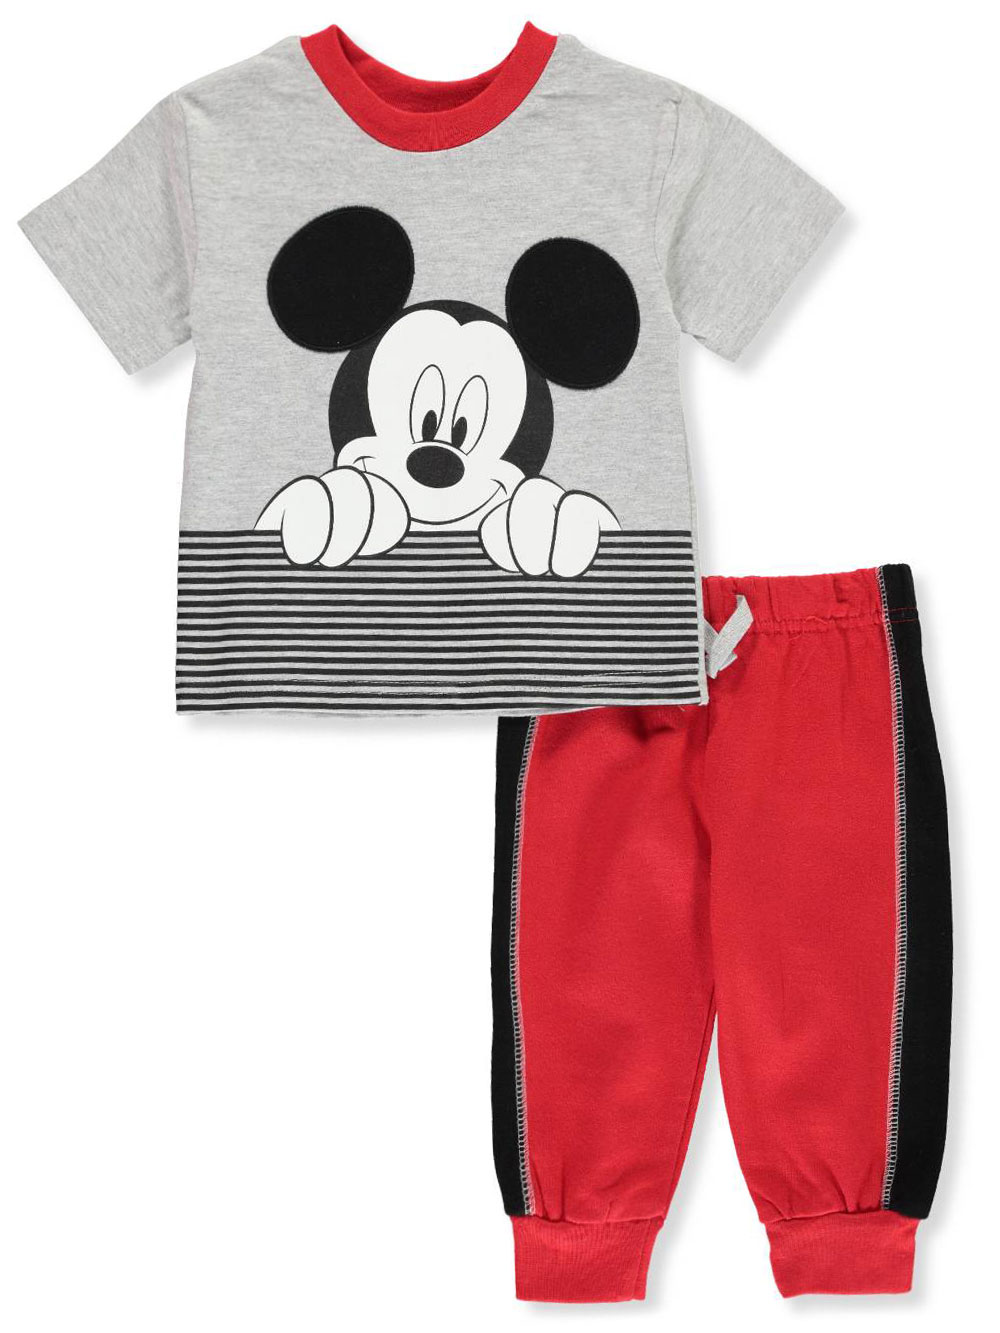 7c19cd4e90 Mickey Mouse 2-Piece Pants Set Outfit by Disney in Gray/red from Cookie's  Kids